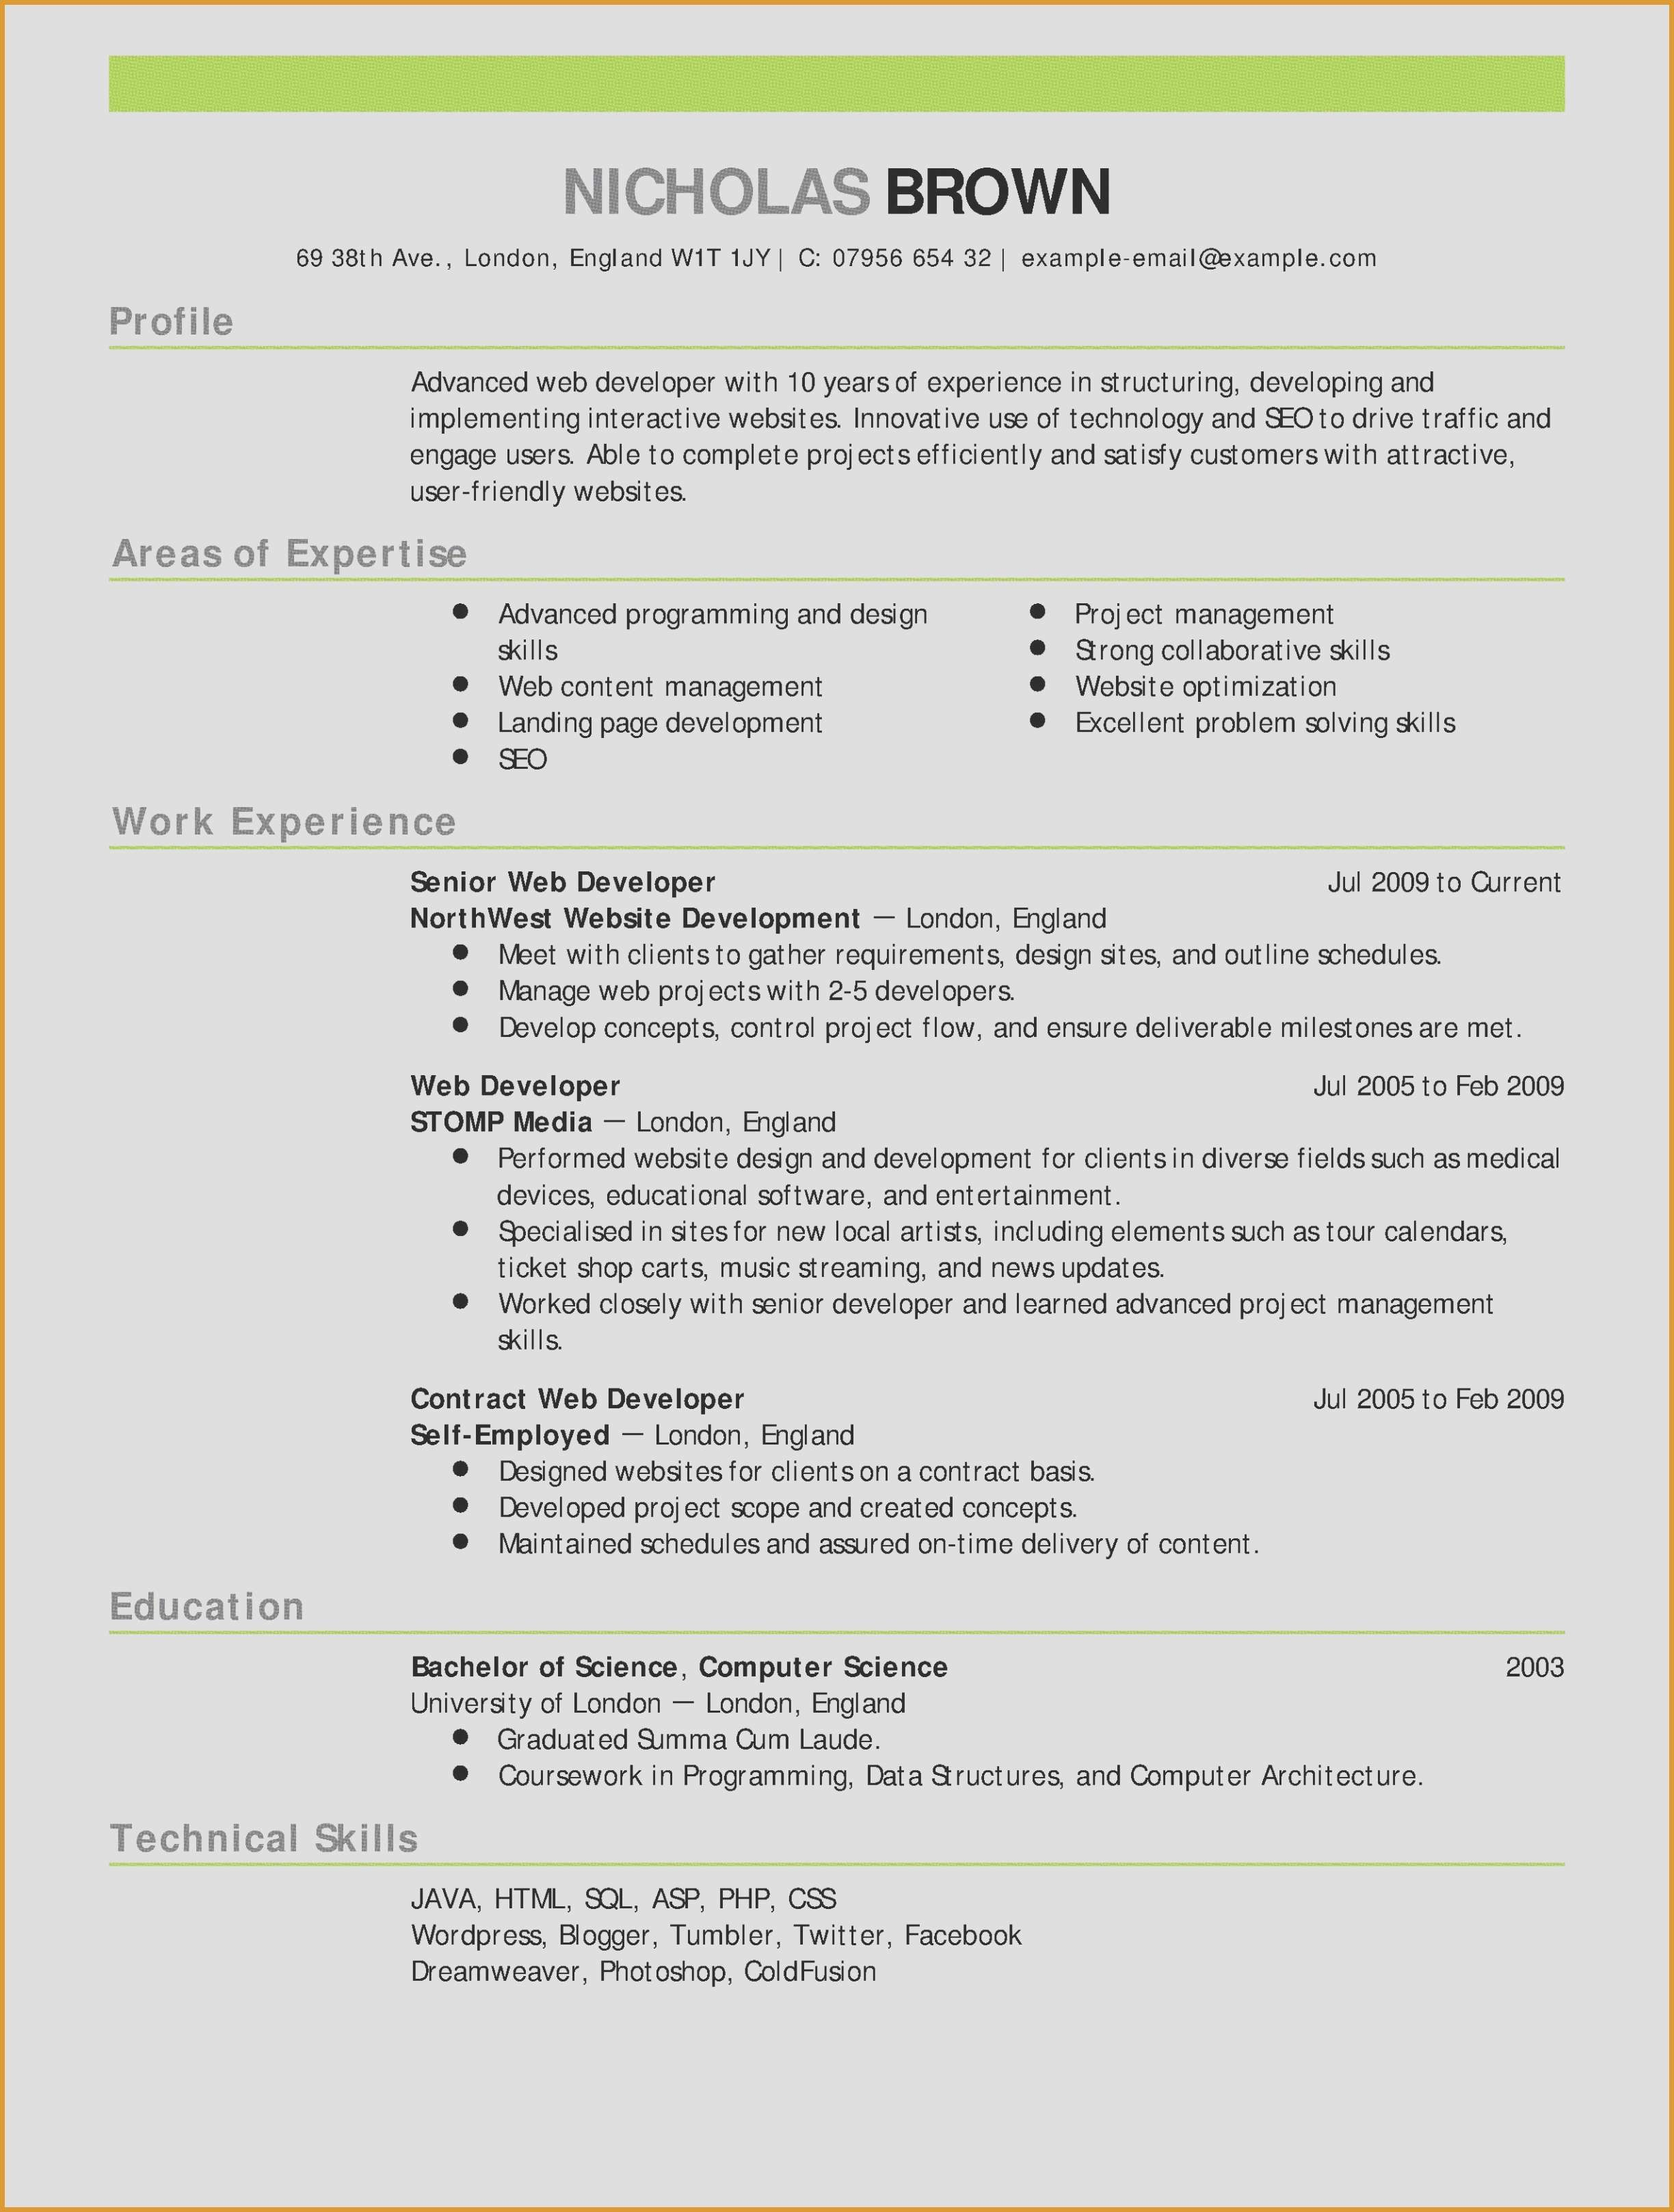 Word 2003 Resume Template - Resume Template Word Lovely Functional Resume Template Word Pour